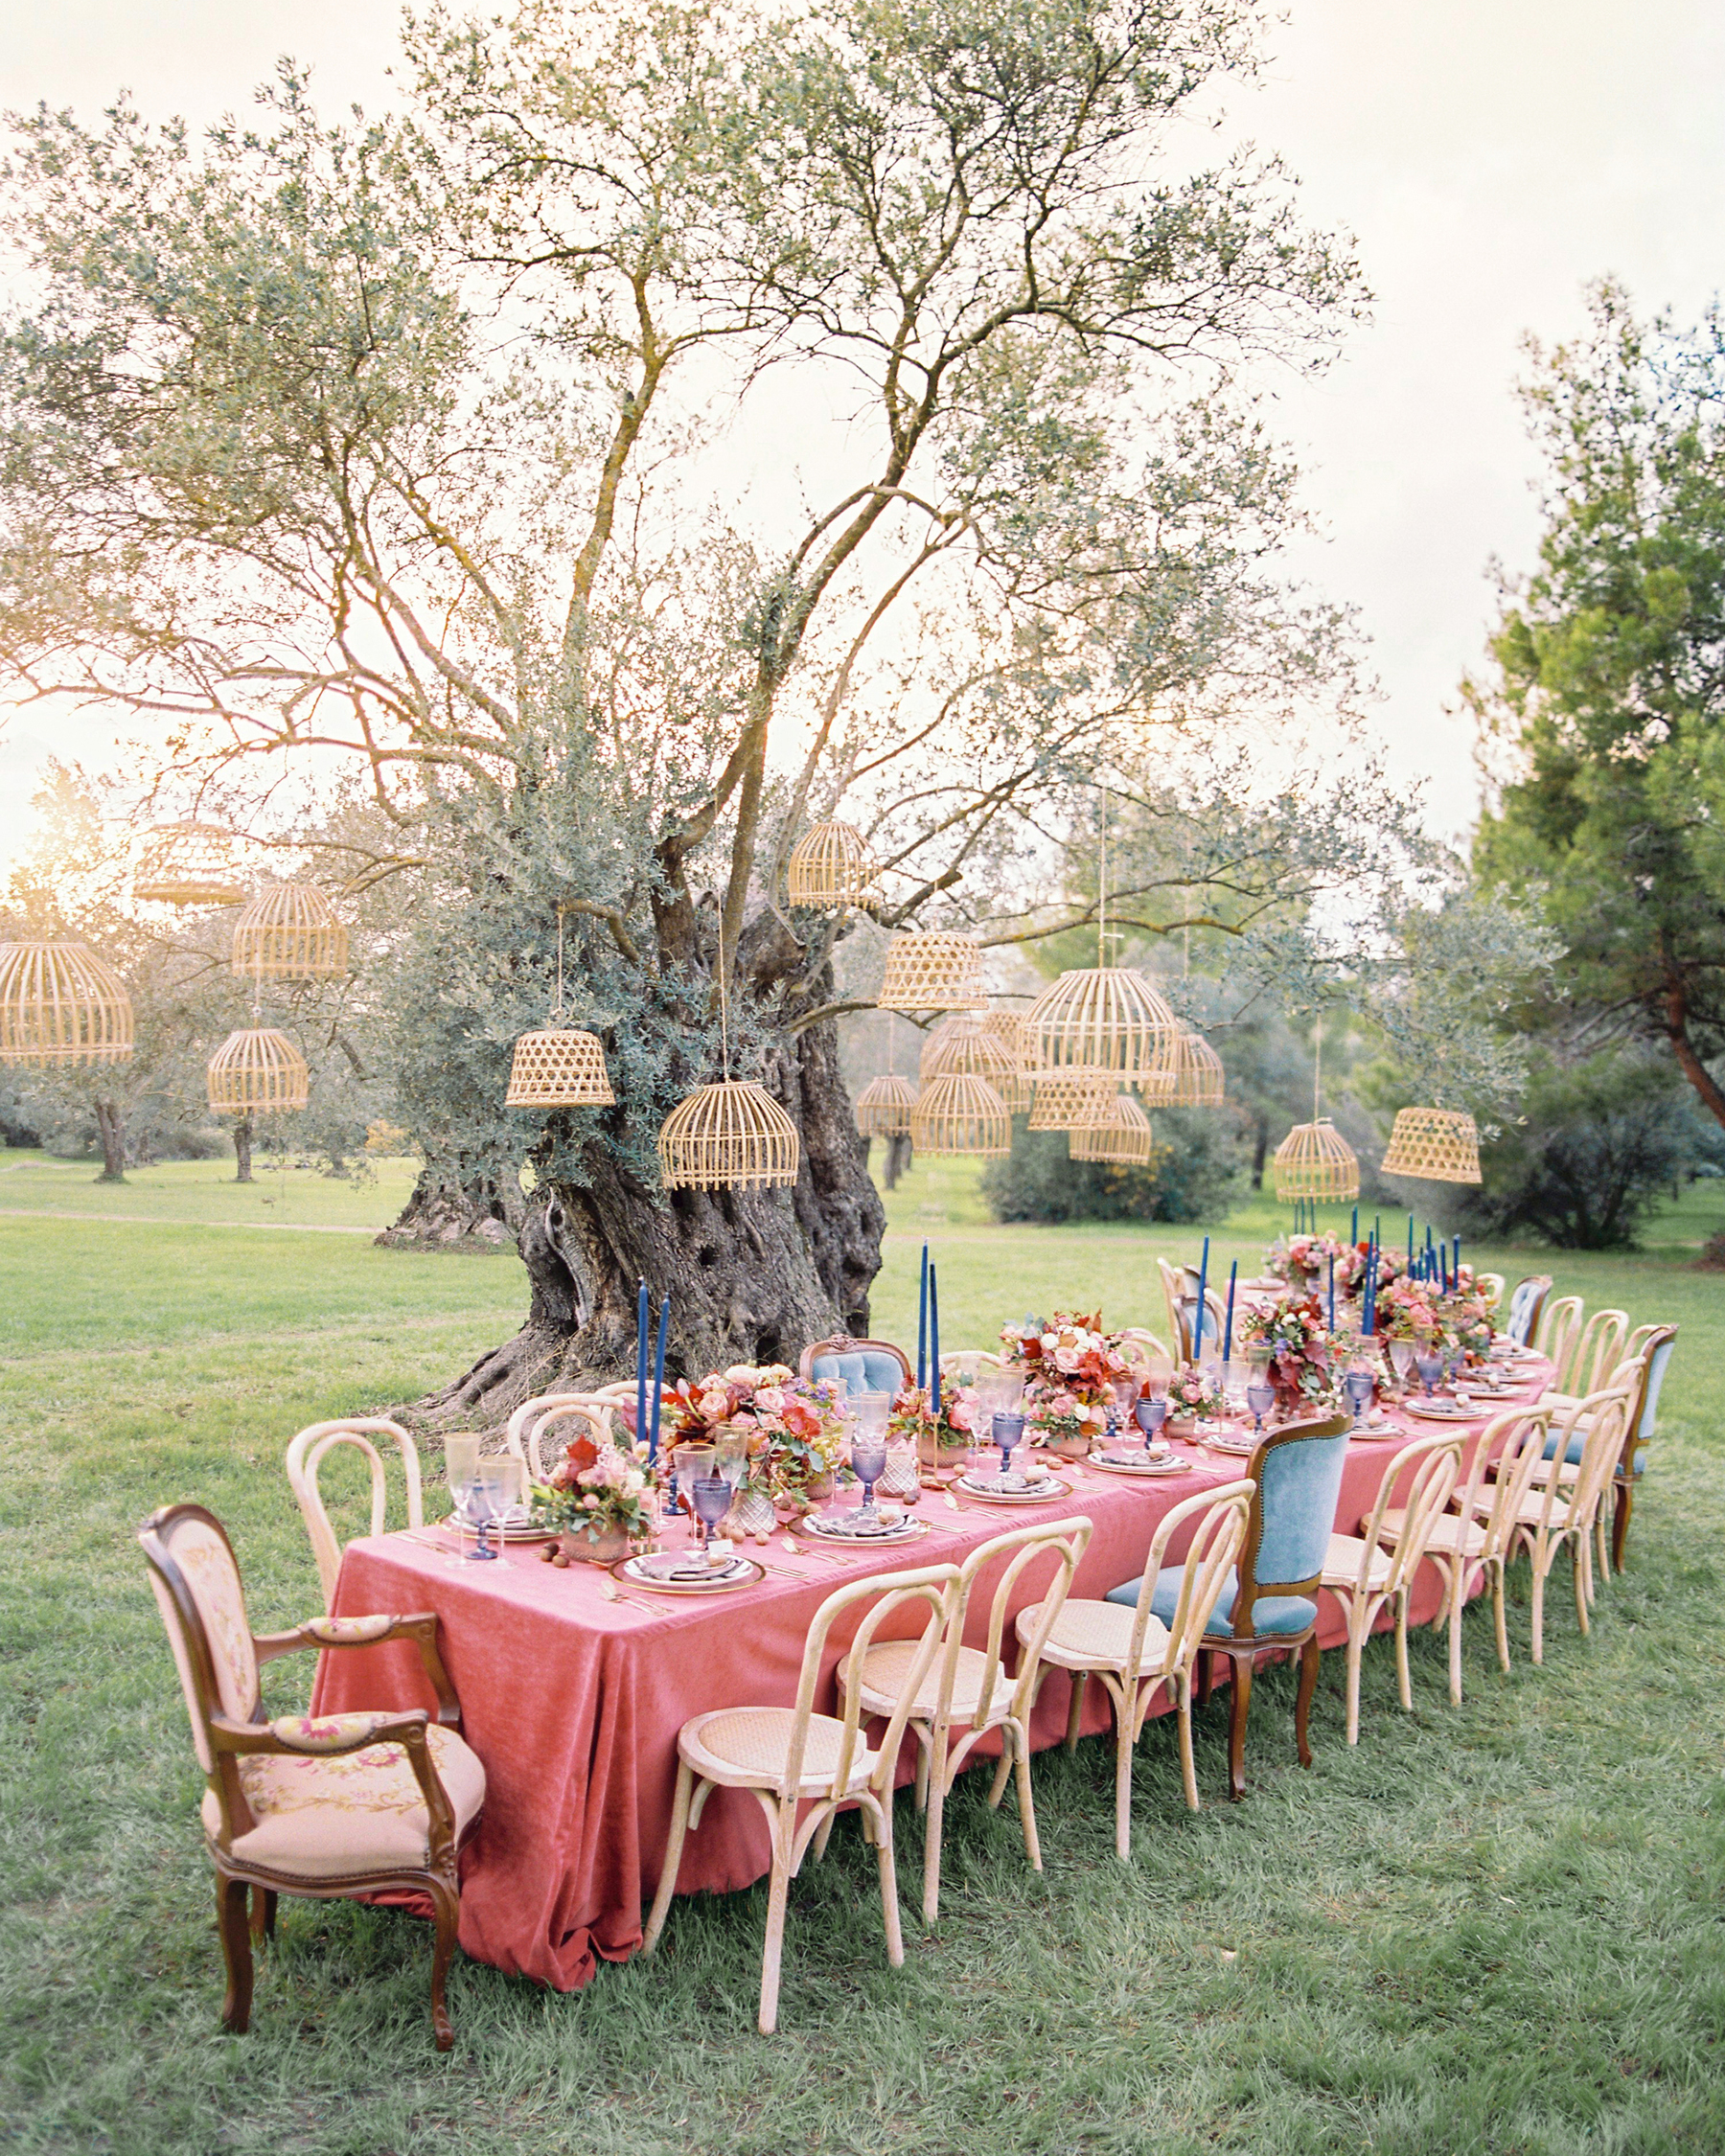 Outdoor Wedding Reception Ideas: Summer Wedding Ideas You'll Want To Steal